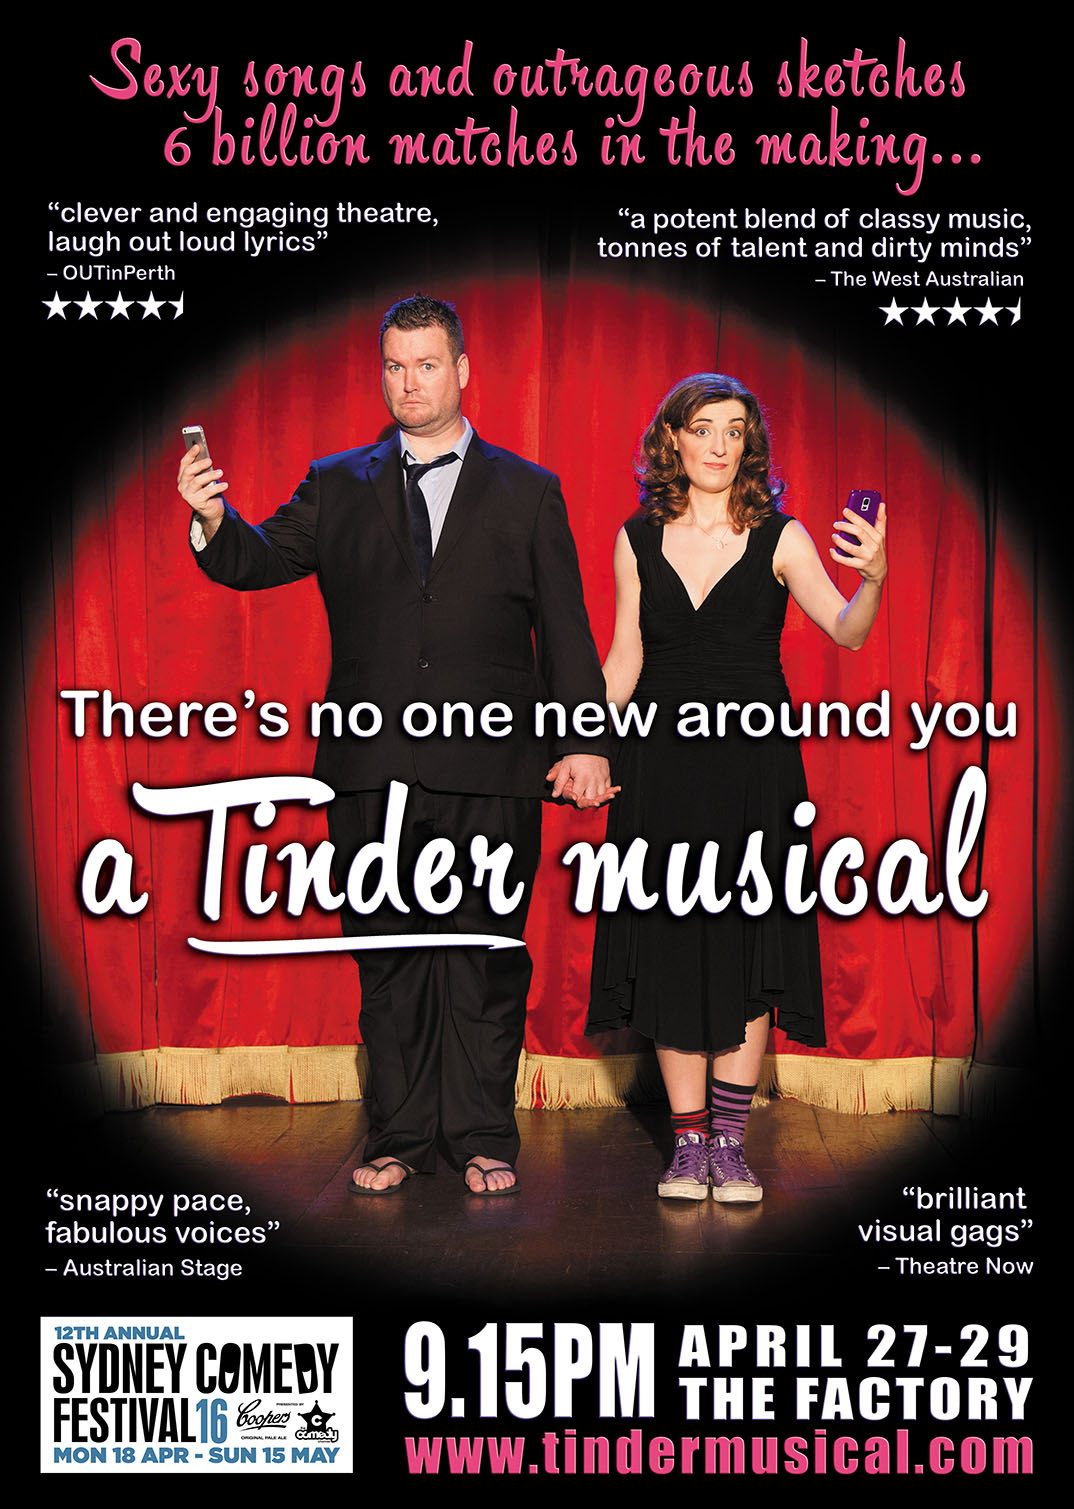 There's No One New Around You: A Tinder Musical at Sydney Comedy Festival